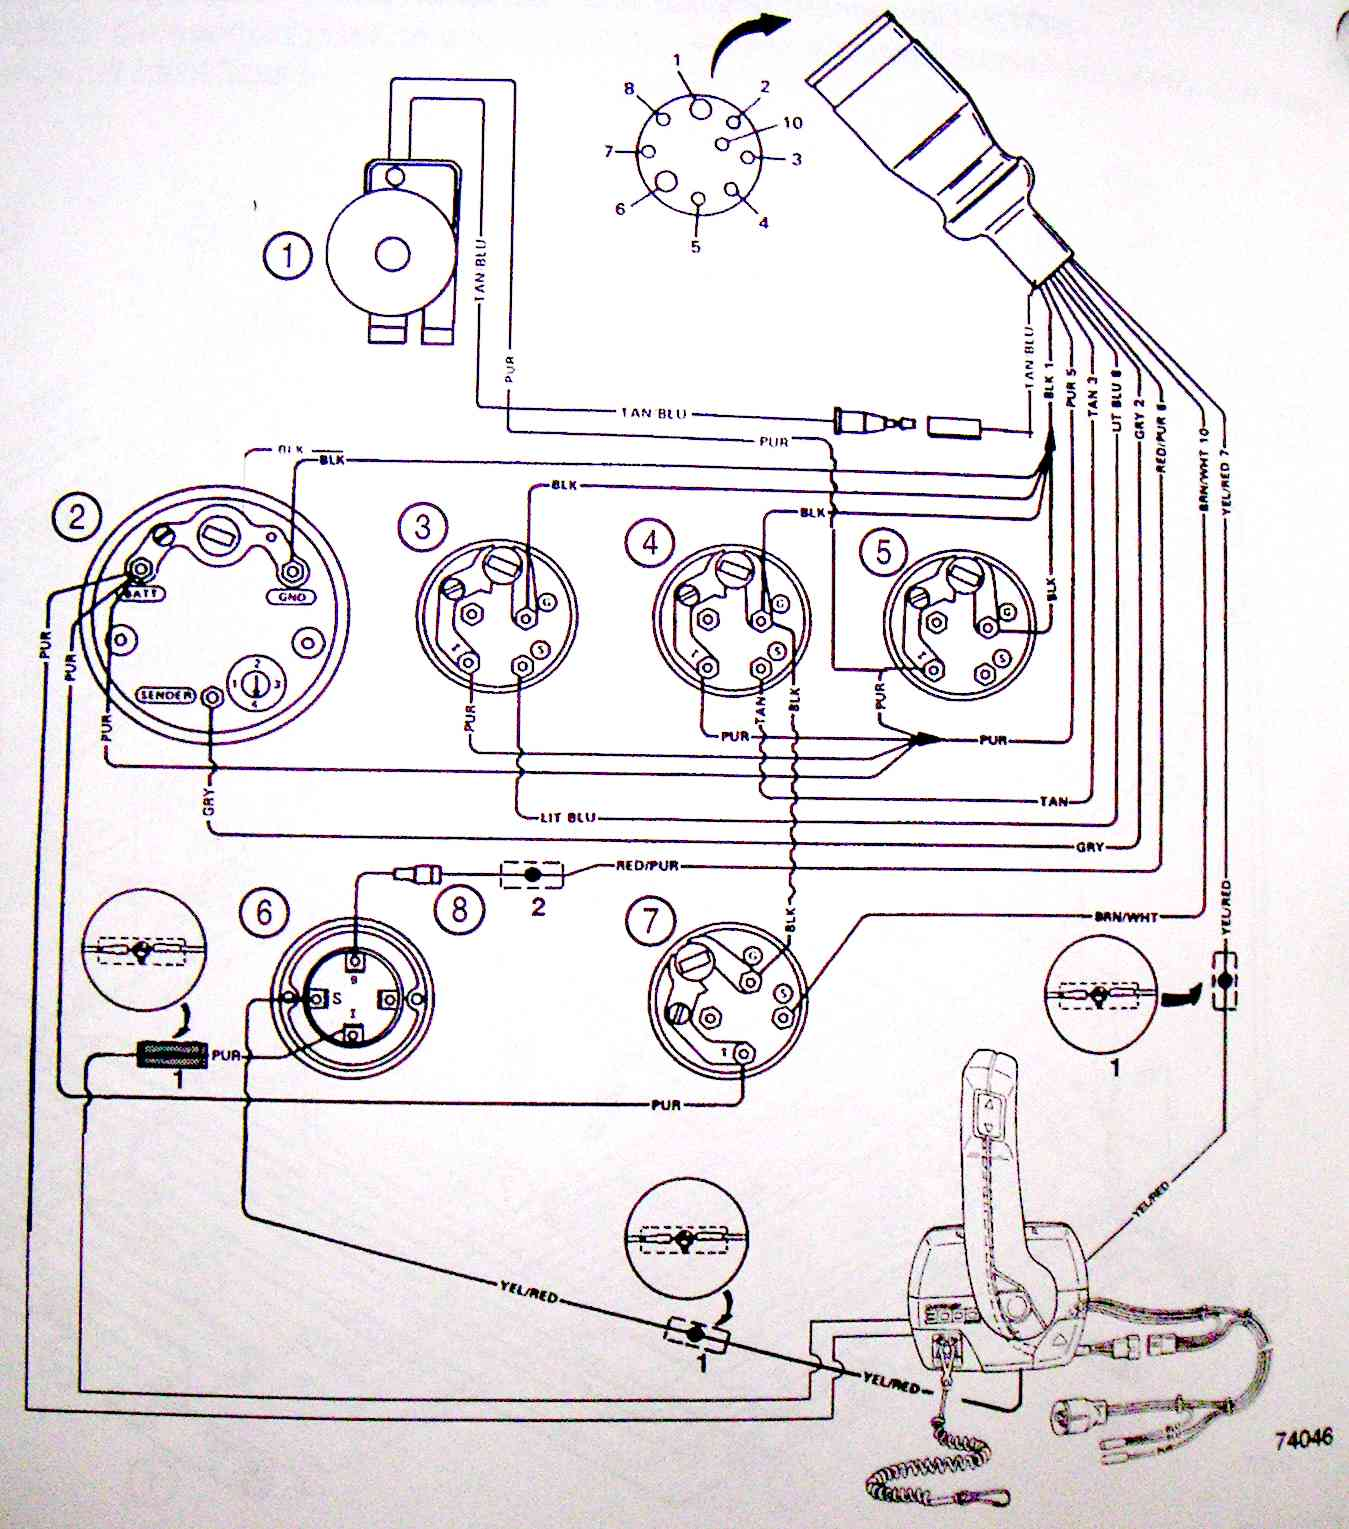 BoatHarness74046 mercruiser 5 7 wiring diagram 5 7 engine diagram \u2022 wiring diagrams mercruiser trim wiring harness at readyjetset.co